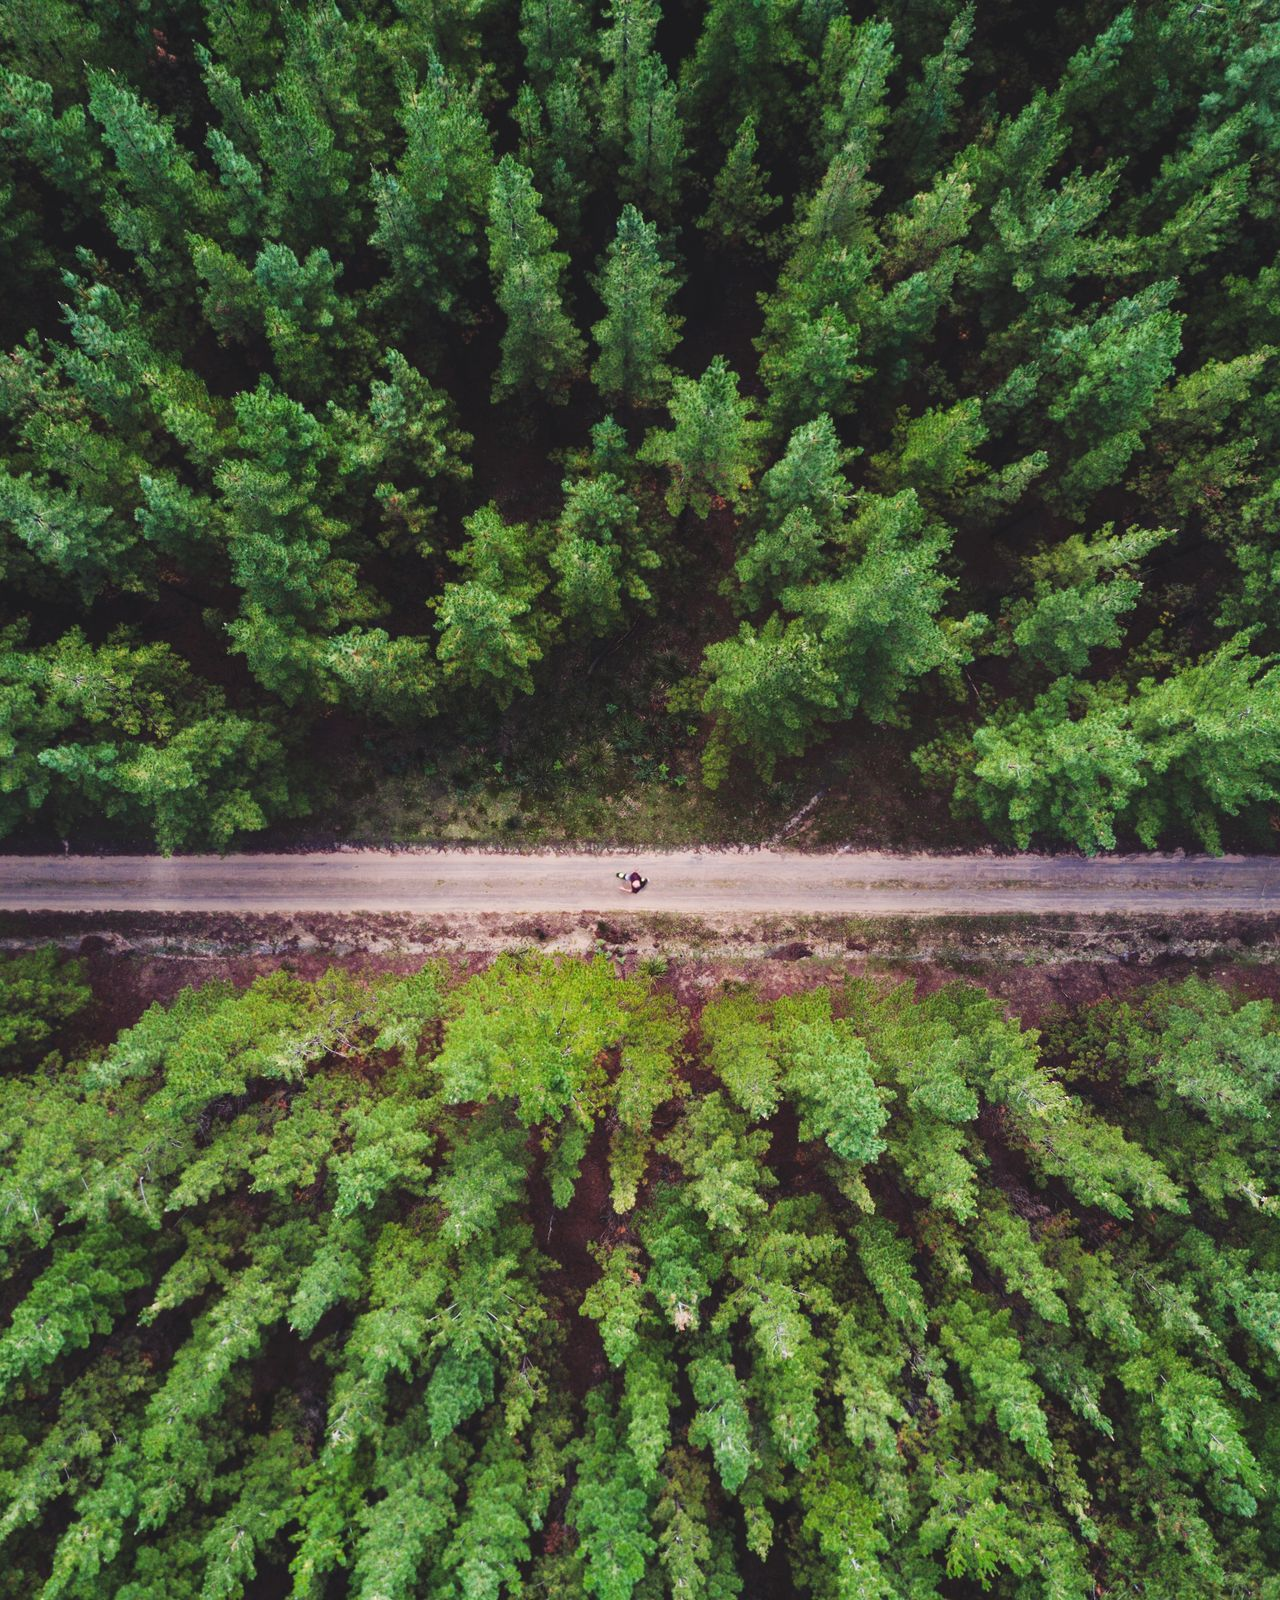 @itchban / www.itchban.com Beauty In Nature Day Domestic Animals Drone  Forest Green Color Growth Leaf Lush Foliage Nature One Adult One Animal One Person Outdoors Plant Tree Break The Mold The Great Outdoors - 2017 EyeEm Awards